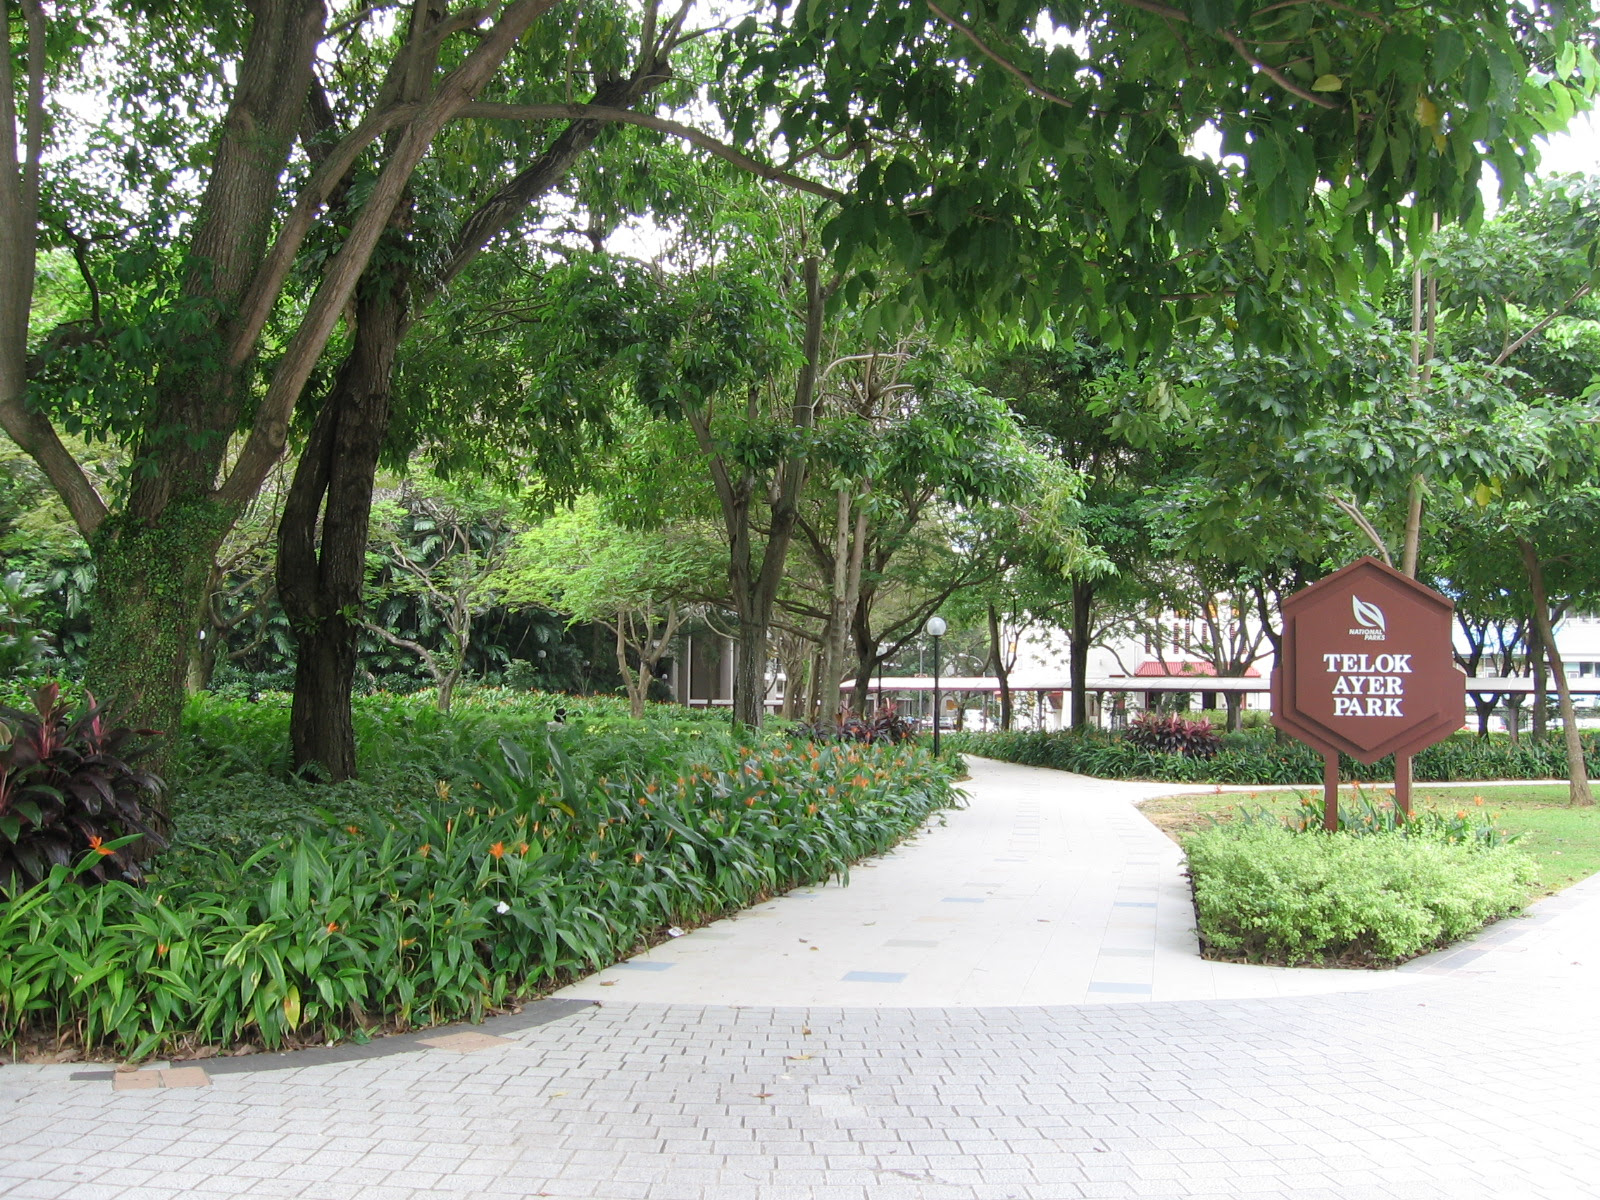 Telok Ayer Park Singapore Map,Map of Telok Ayer Park Singapore,Tourist Attractions in Singapore,Things to do in Singapore,Telok Ayer Park Singapore accommodation destinations attractions hotels map reviews photos pictures